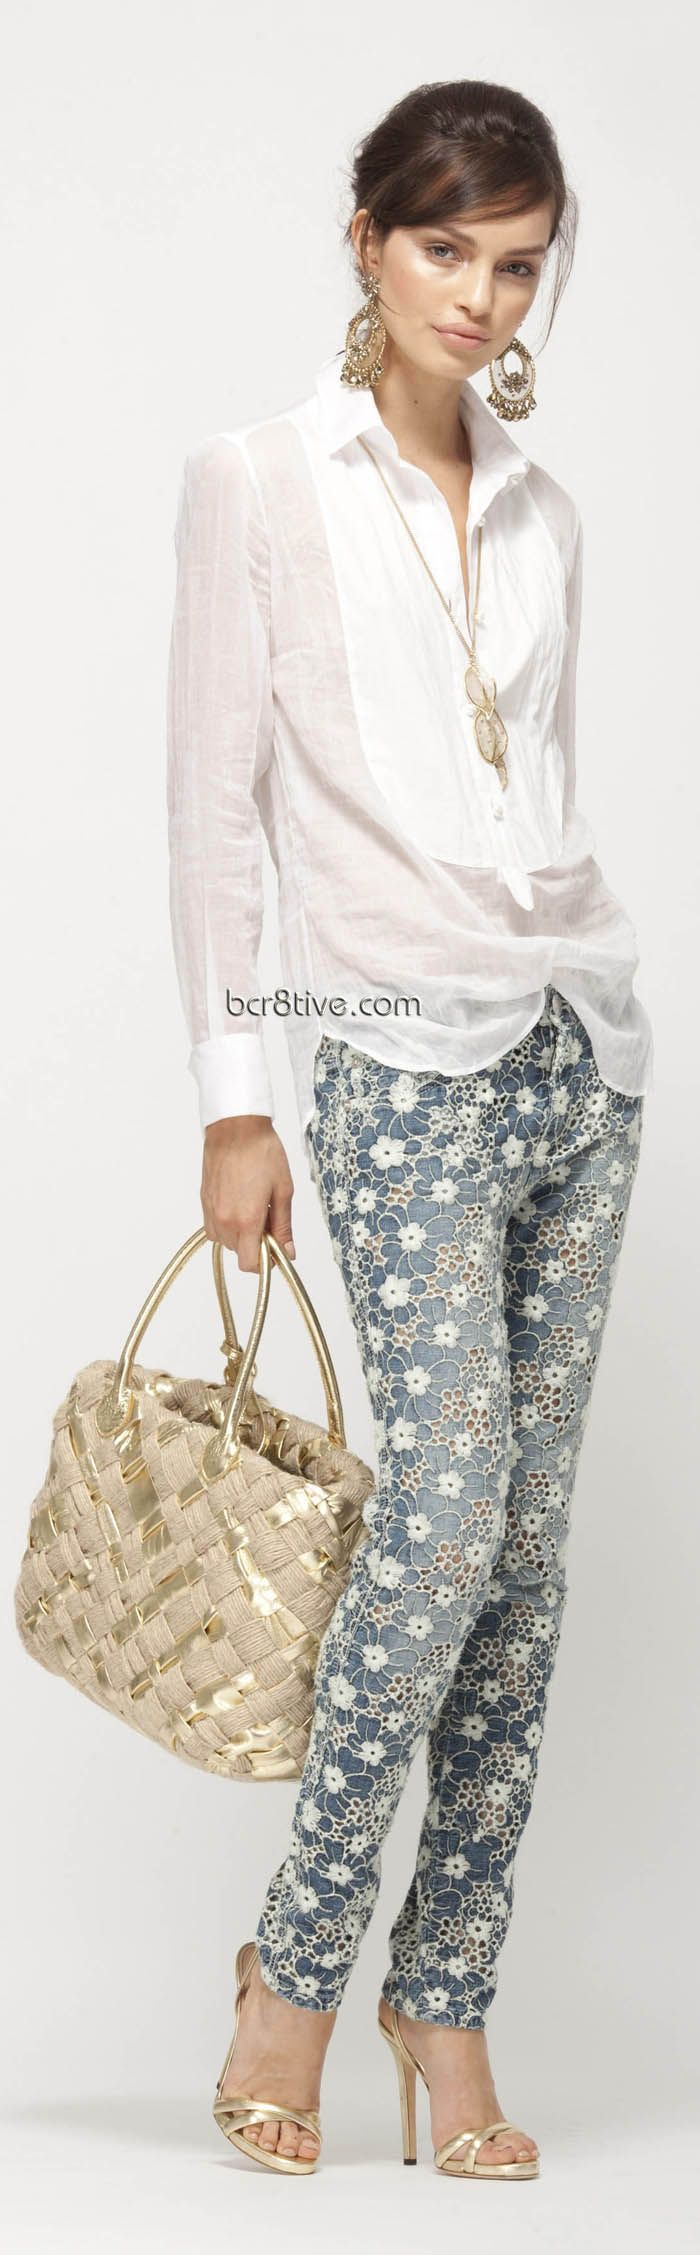 Ermanno Scervino Pre Collection 2013 - Love these jeans & are available to buy too.